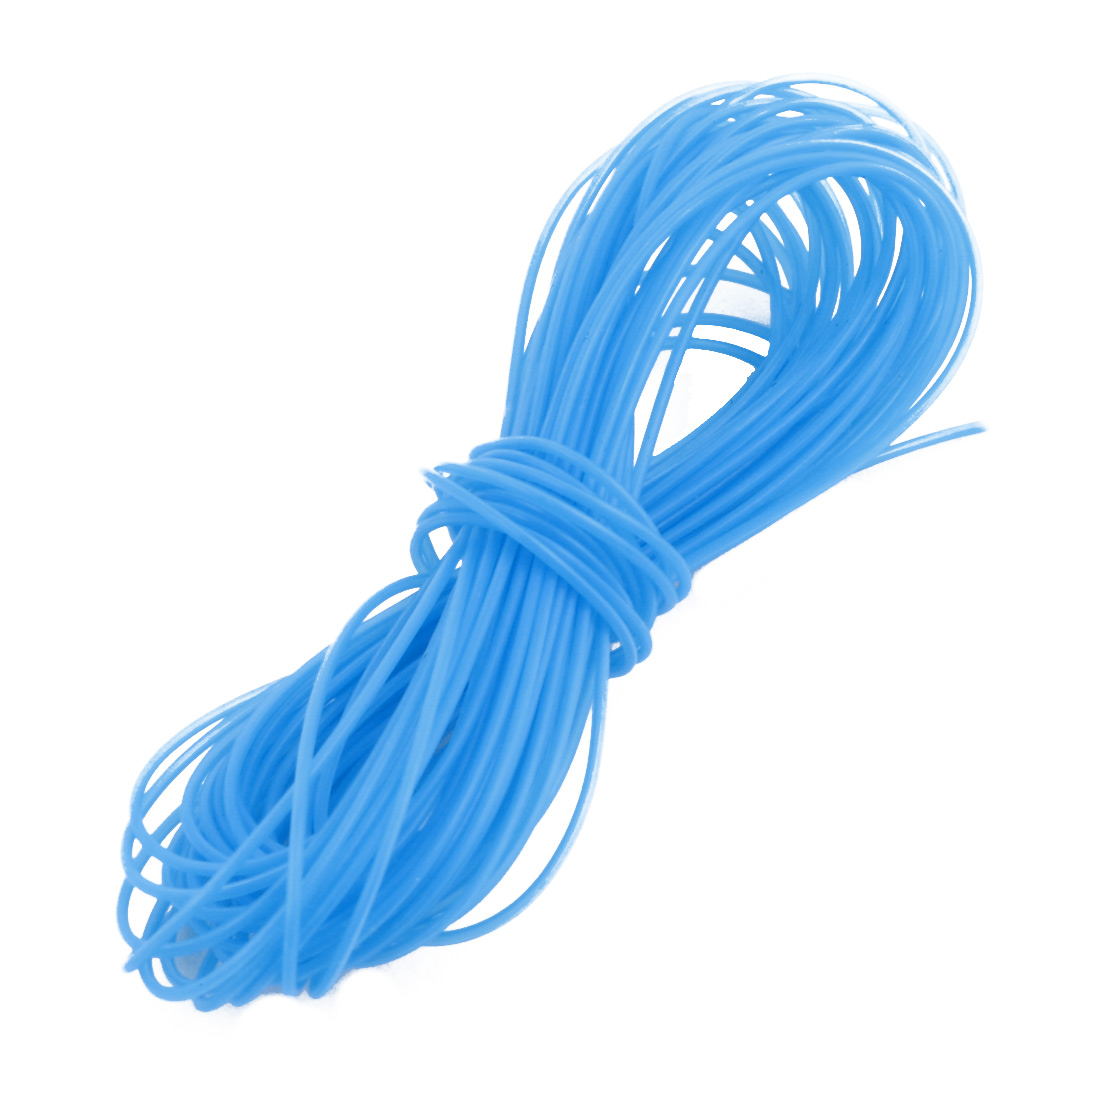 0.38mmx0.68mm PTFE Resistant High Temperature Blue Tubing 5 Meters 16.4Ft